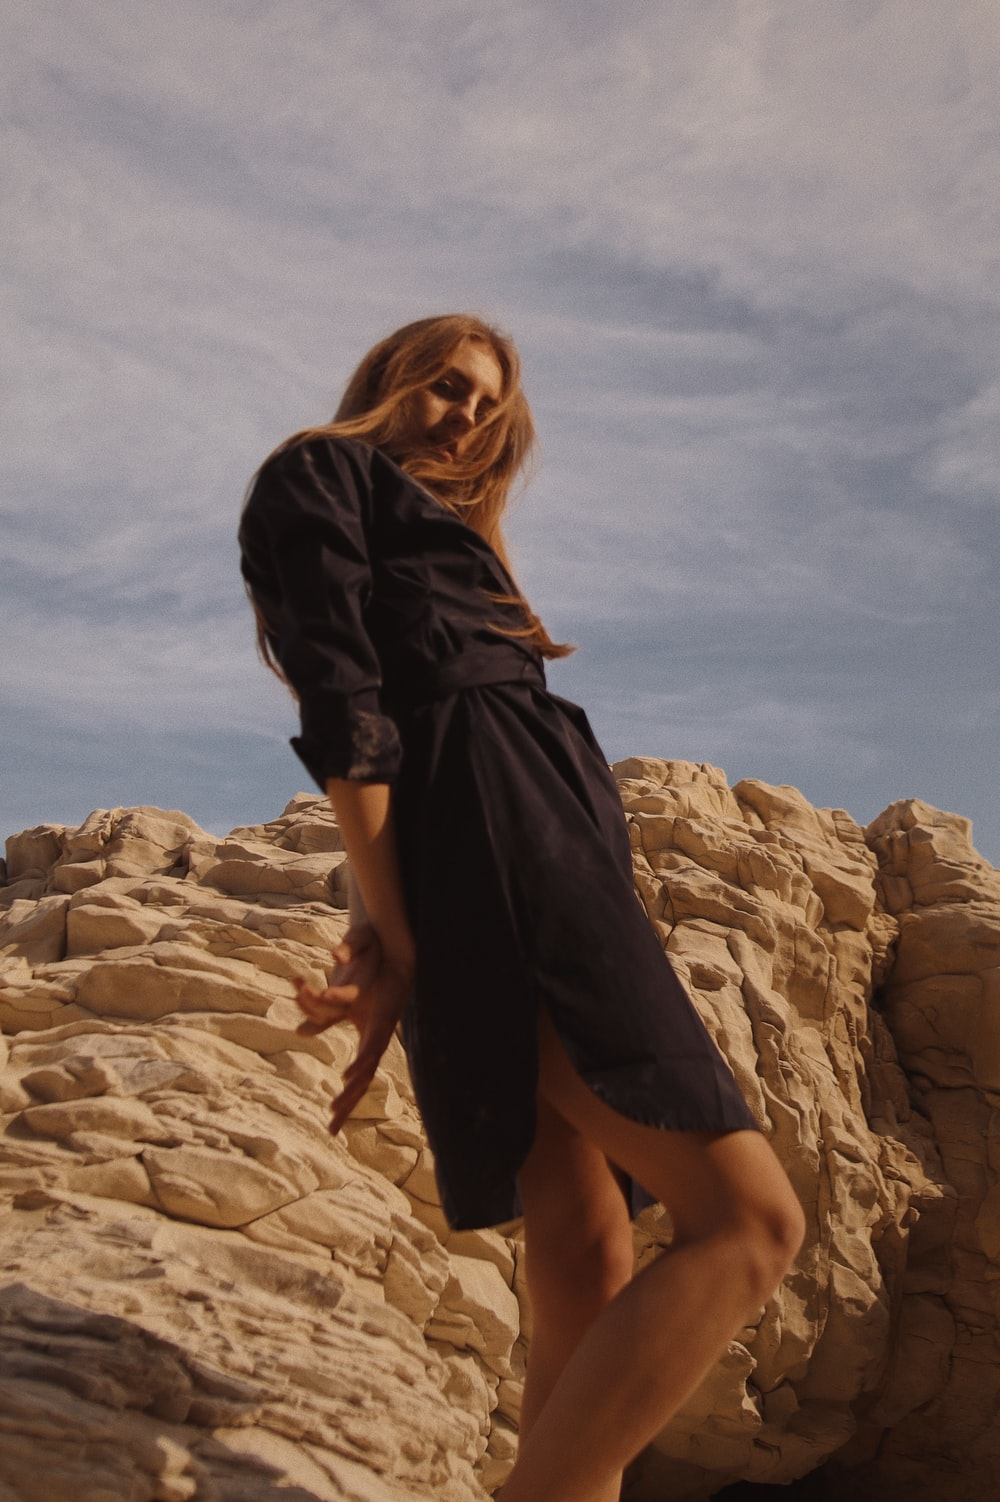 woman in black dress standing on brown rock formation during daytime